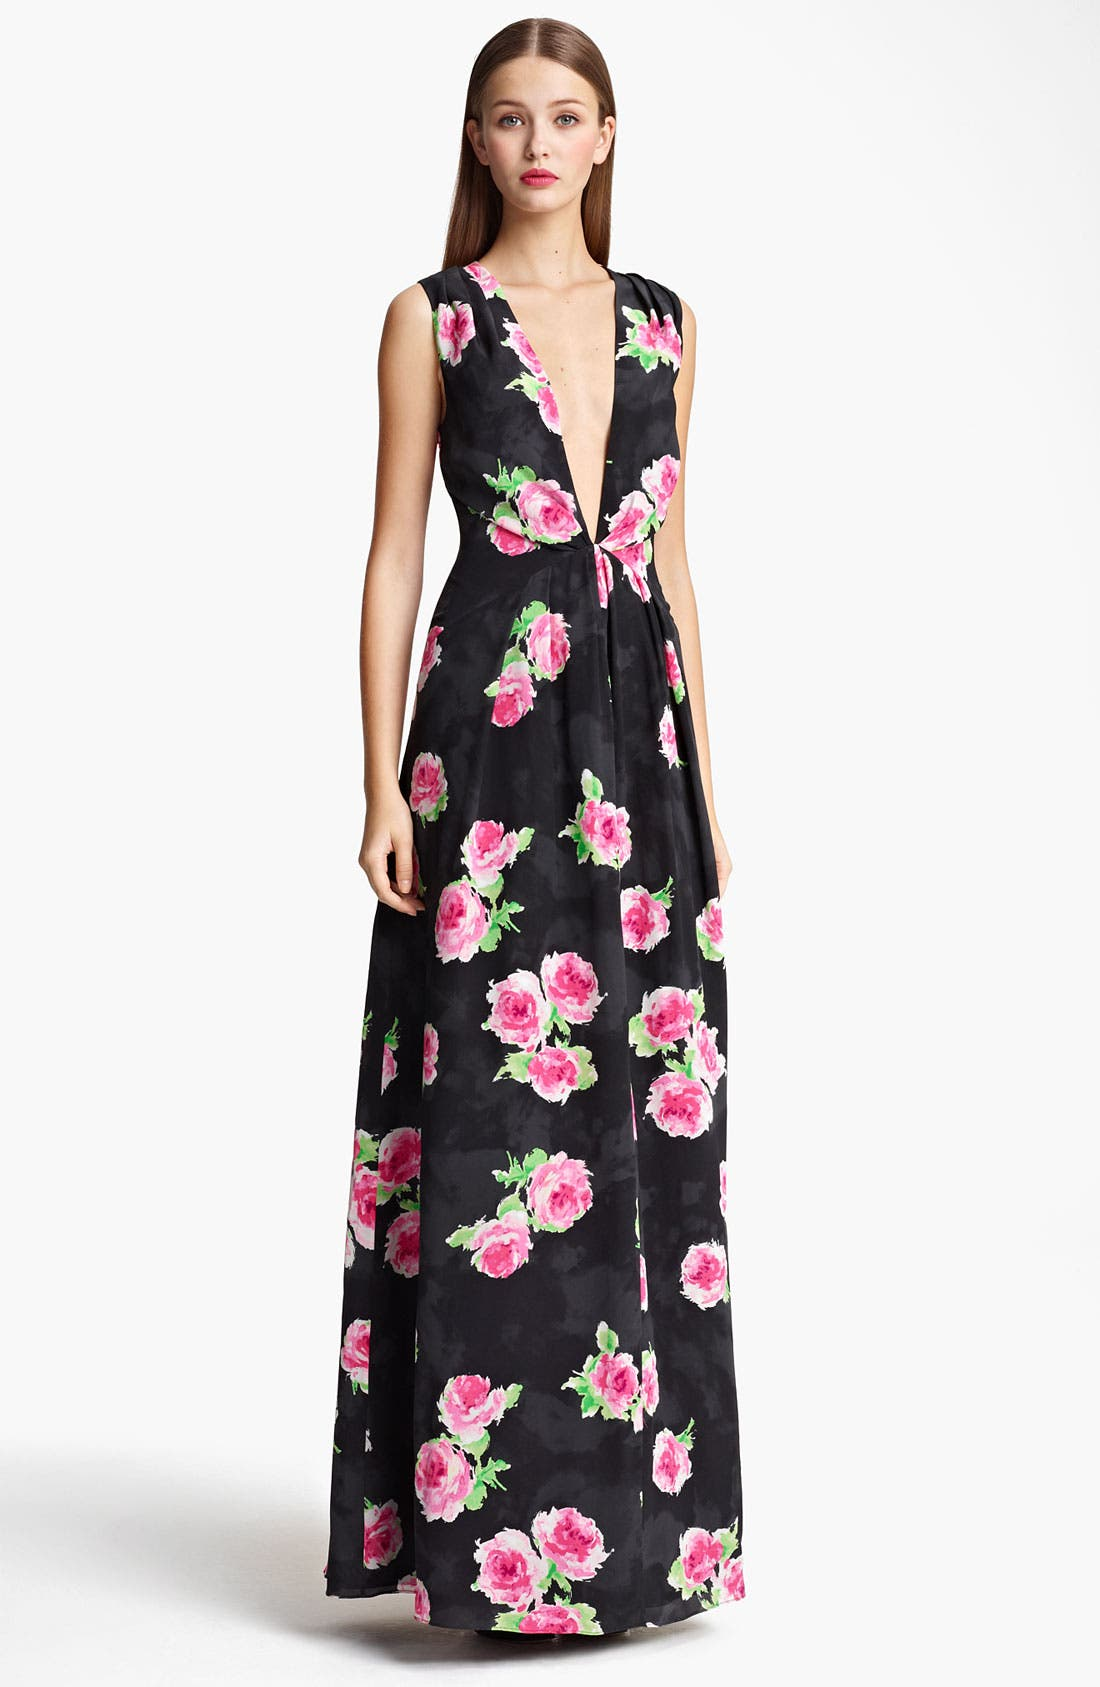 Main Image - Moschino Cheap & Chic Rose Print Crêpe de Chine Gown